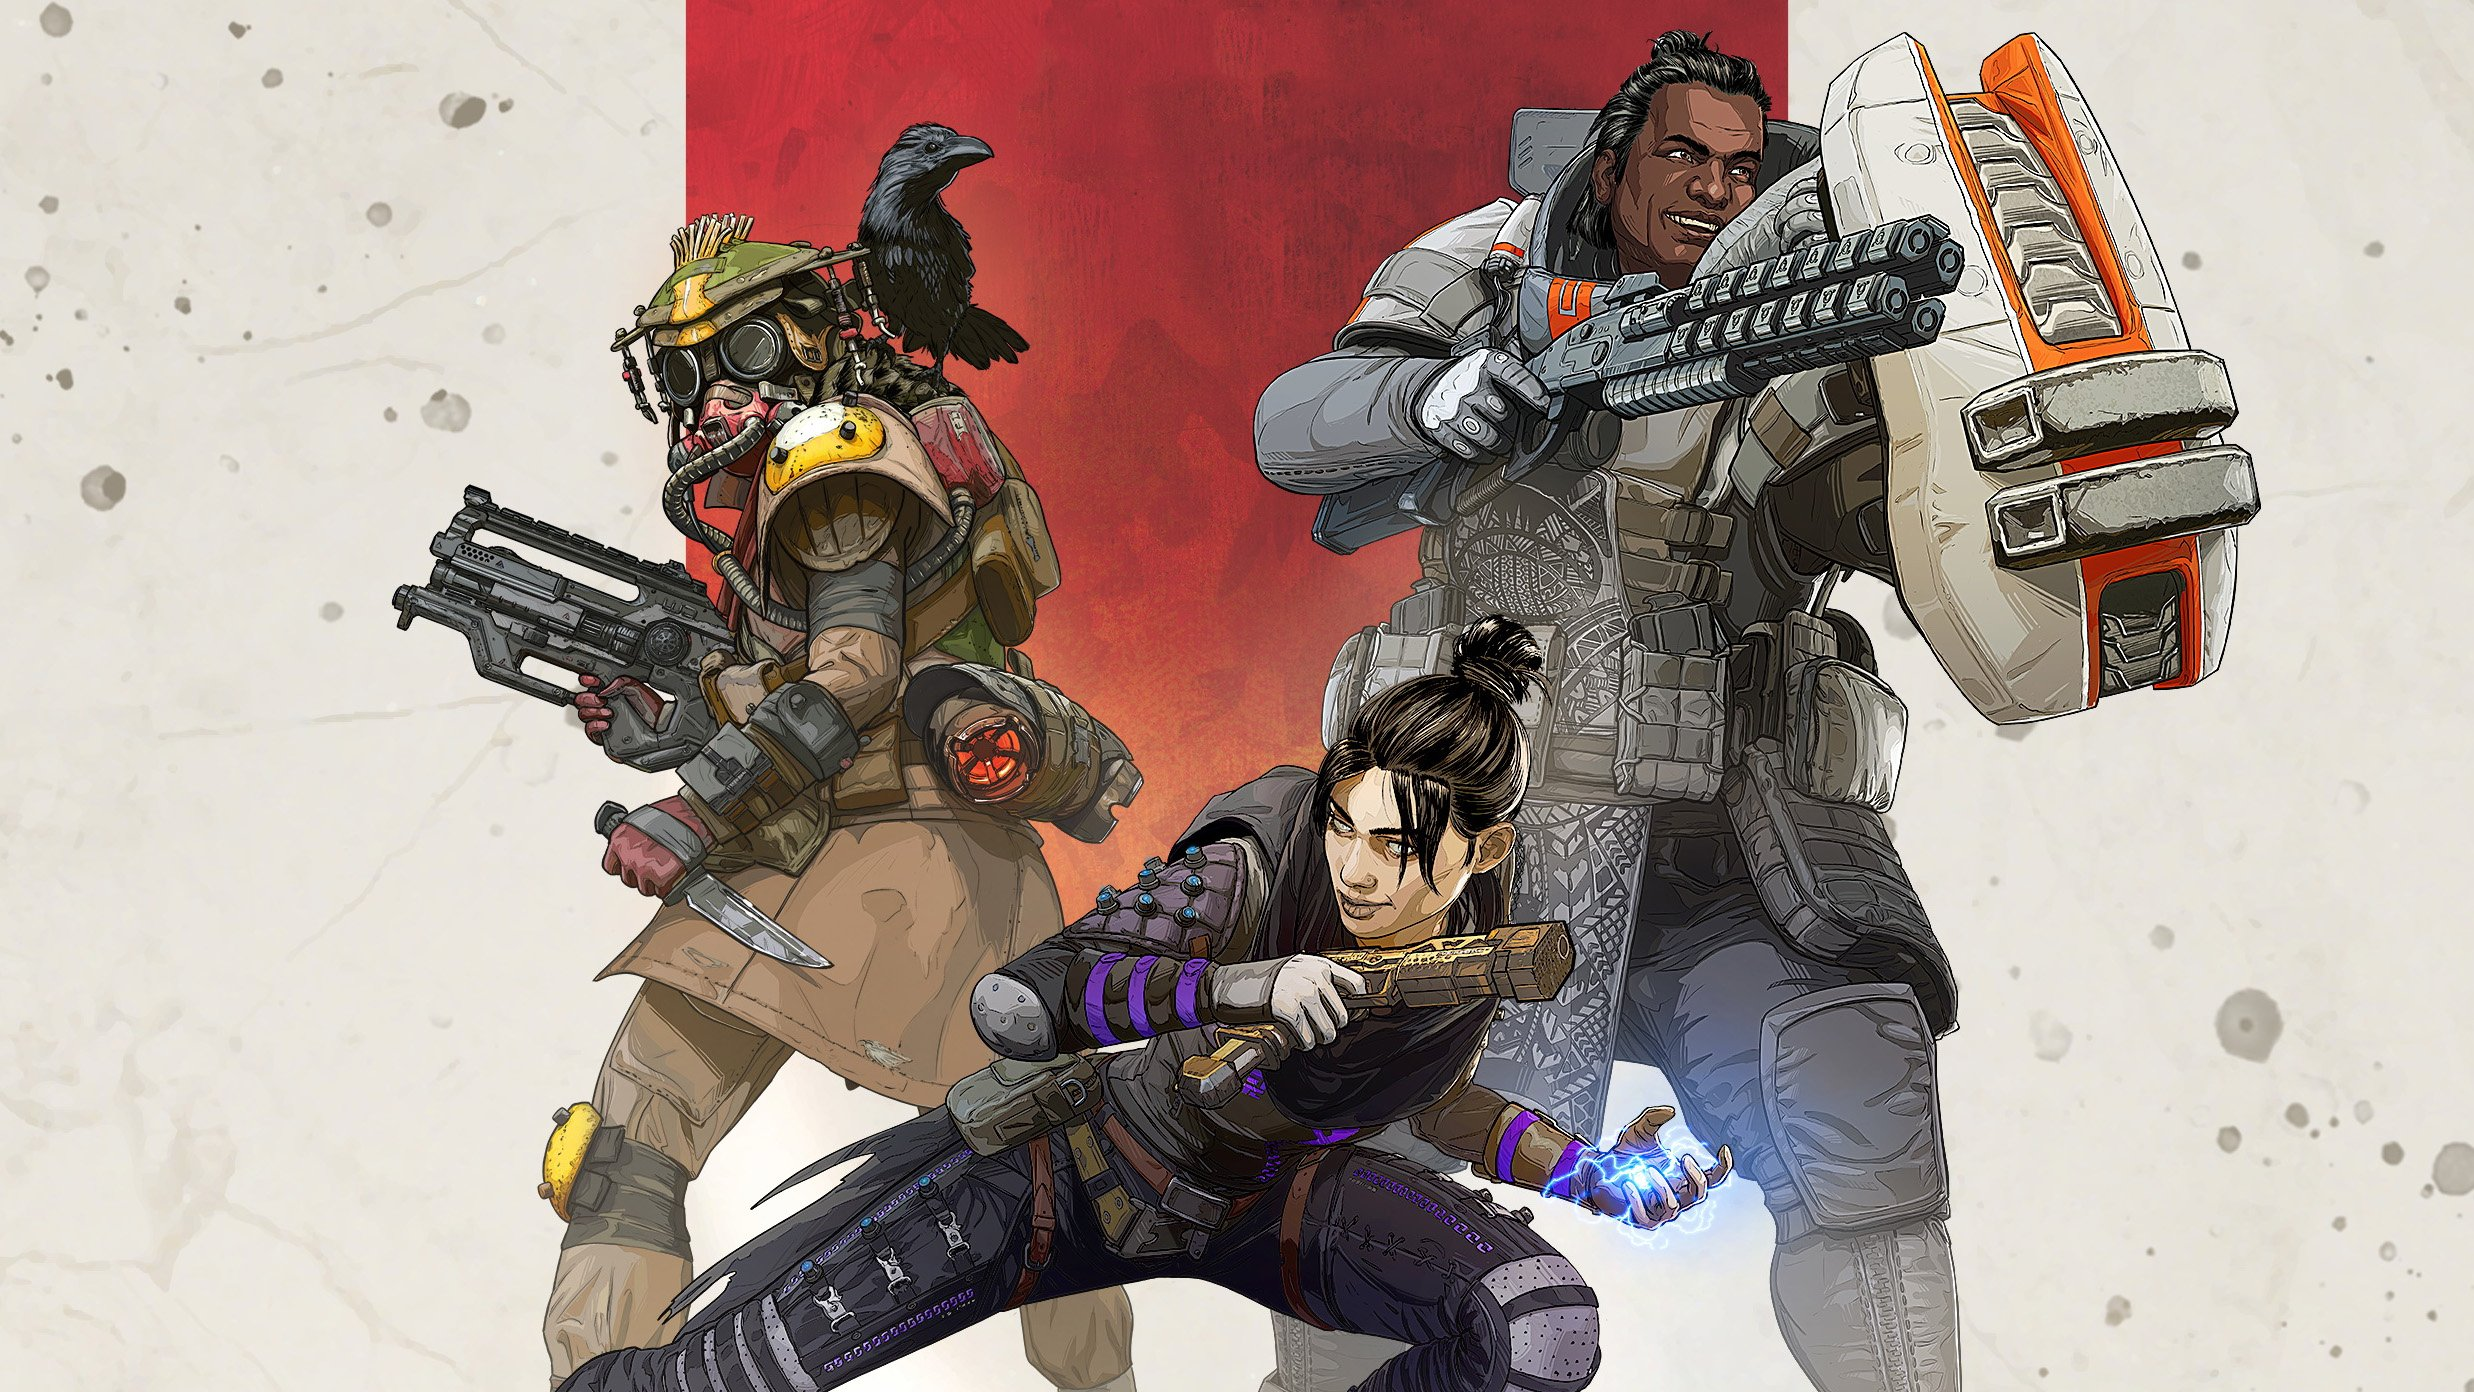 New Legends and weapons will be added to the game alongside the Battle Pass. Legends and weapons will not be included in Battle Passes for Apex Legends.